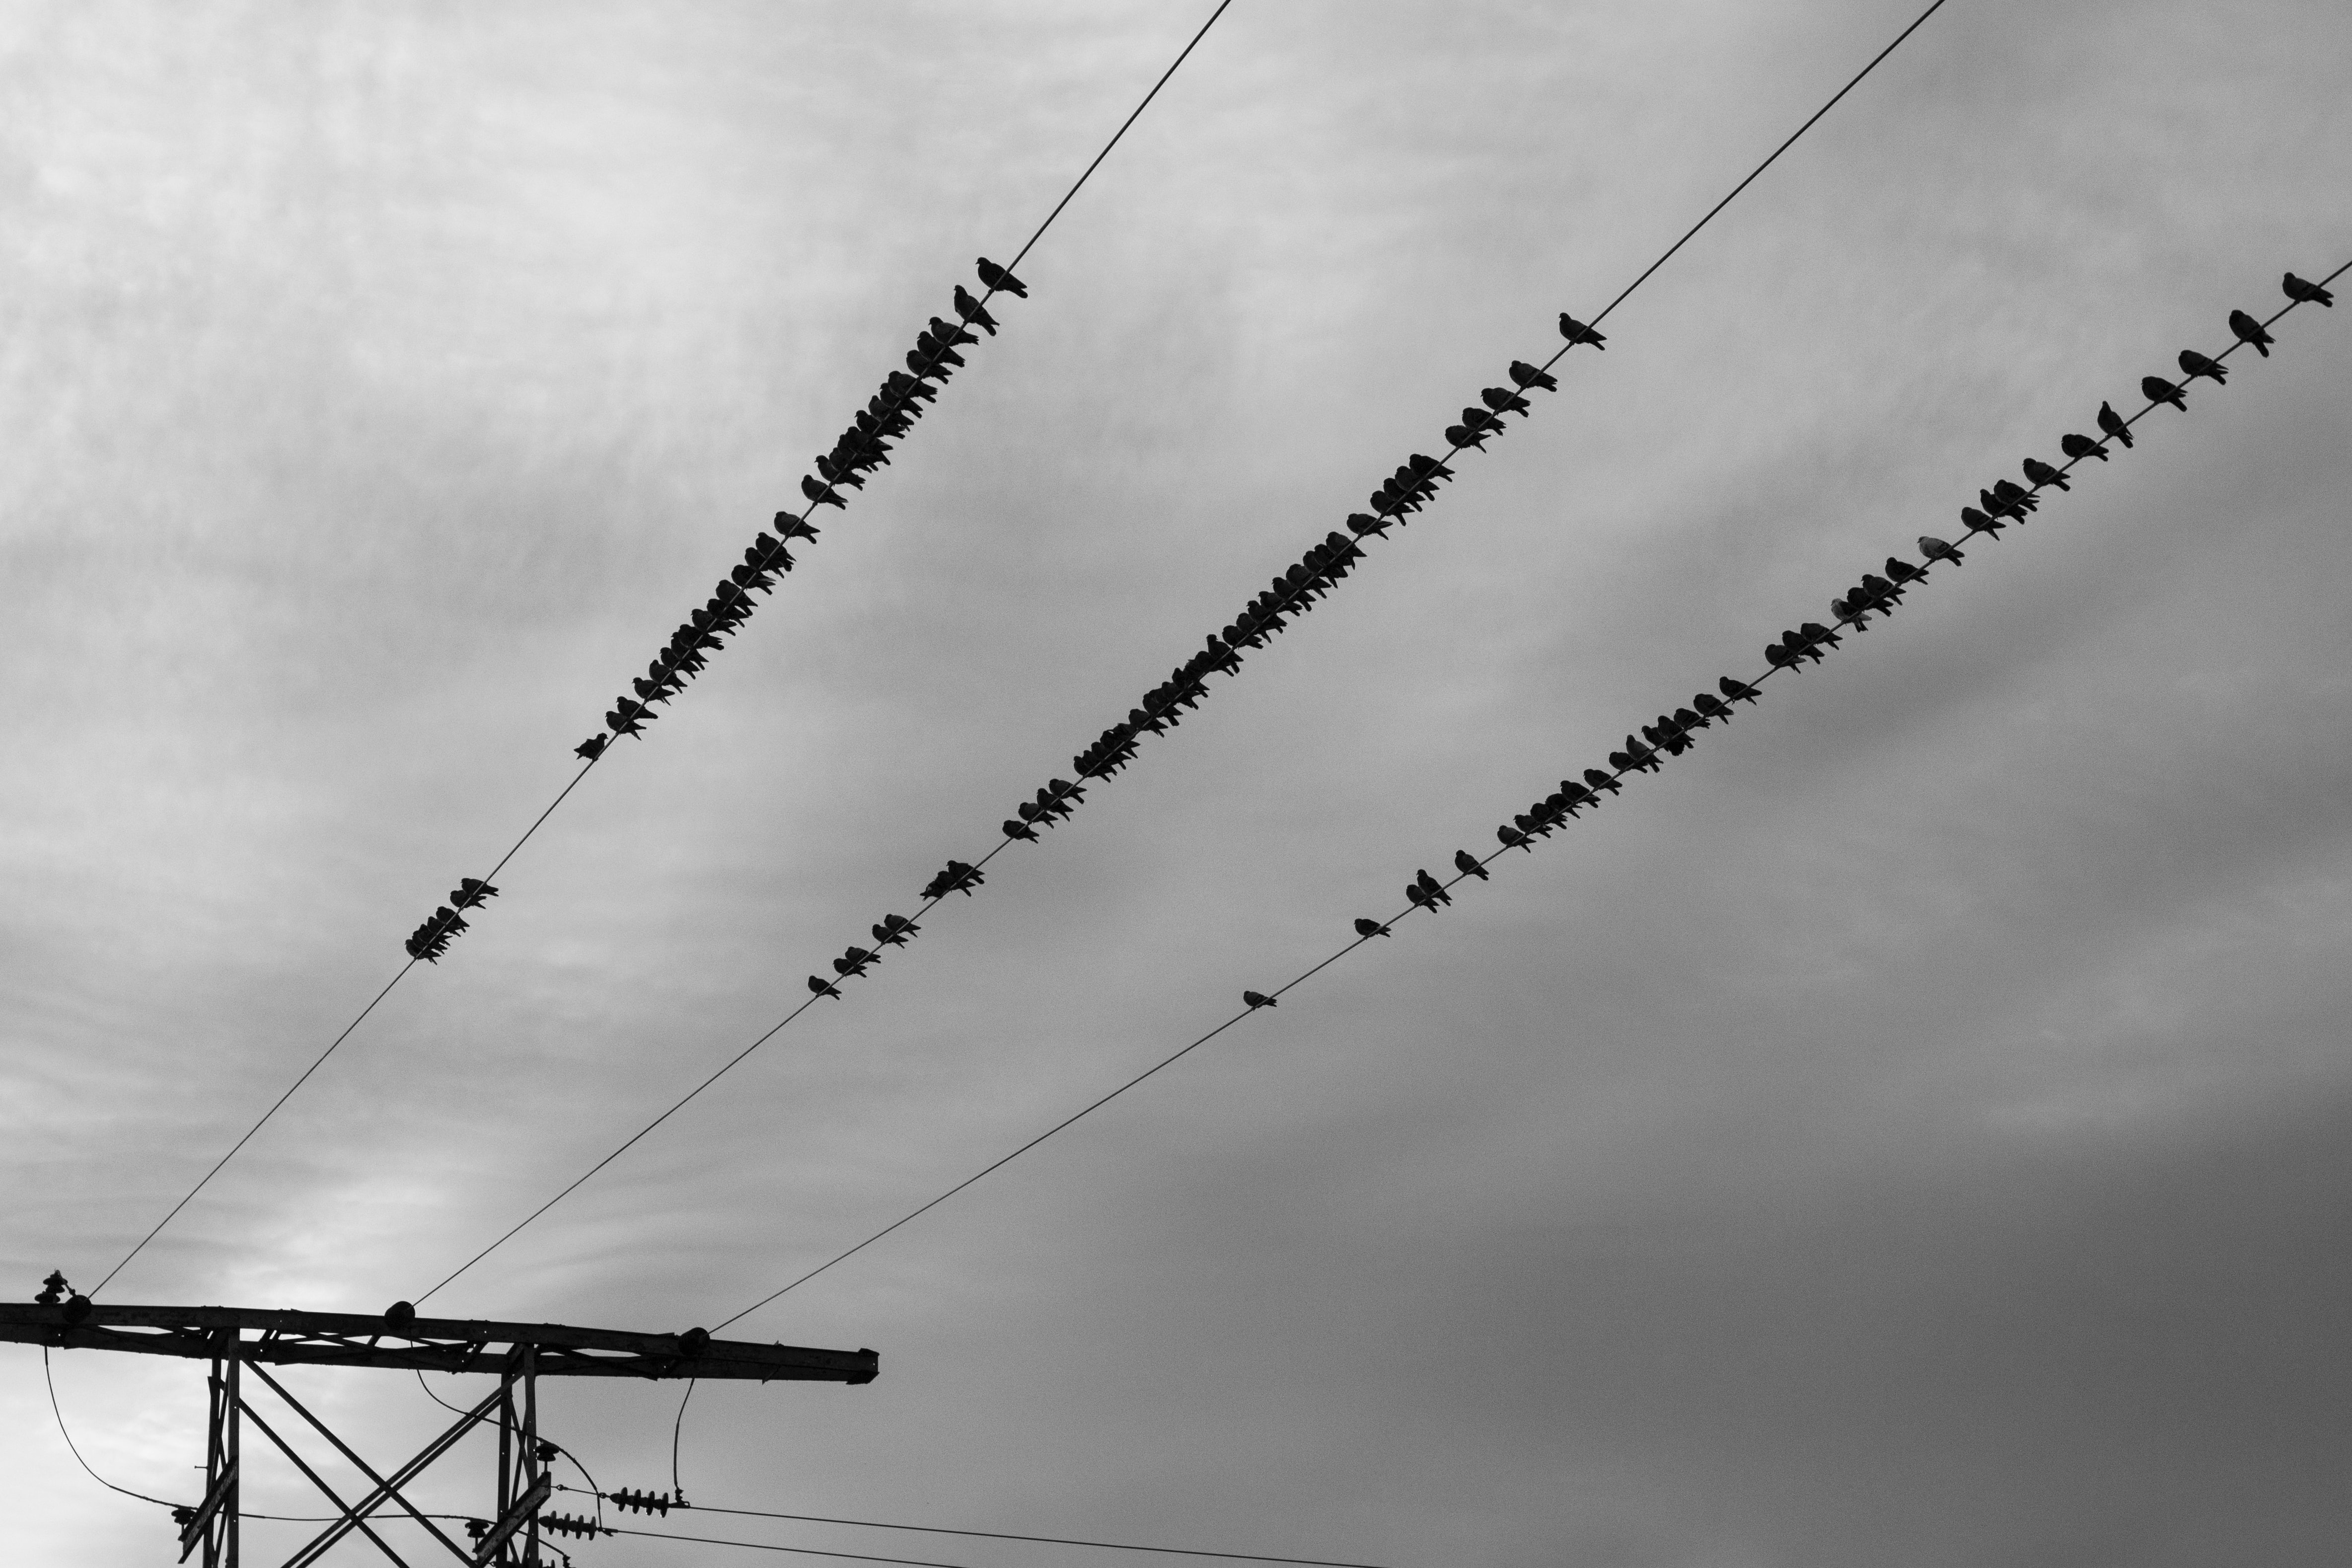 A black-and-white shot of a large number of birds sitting on power lines